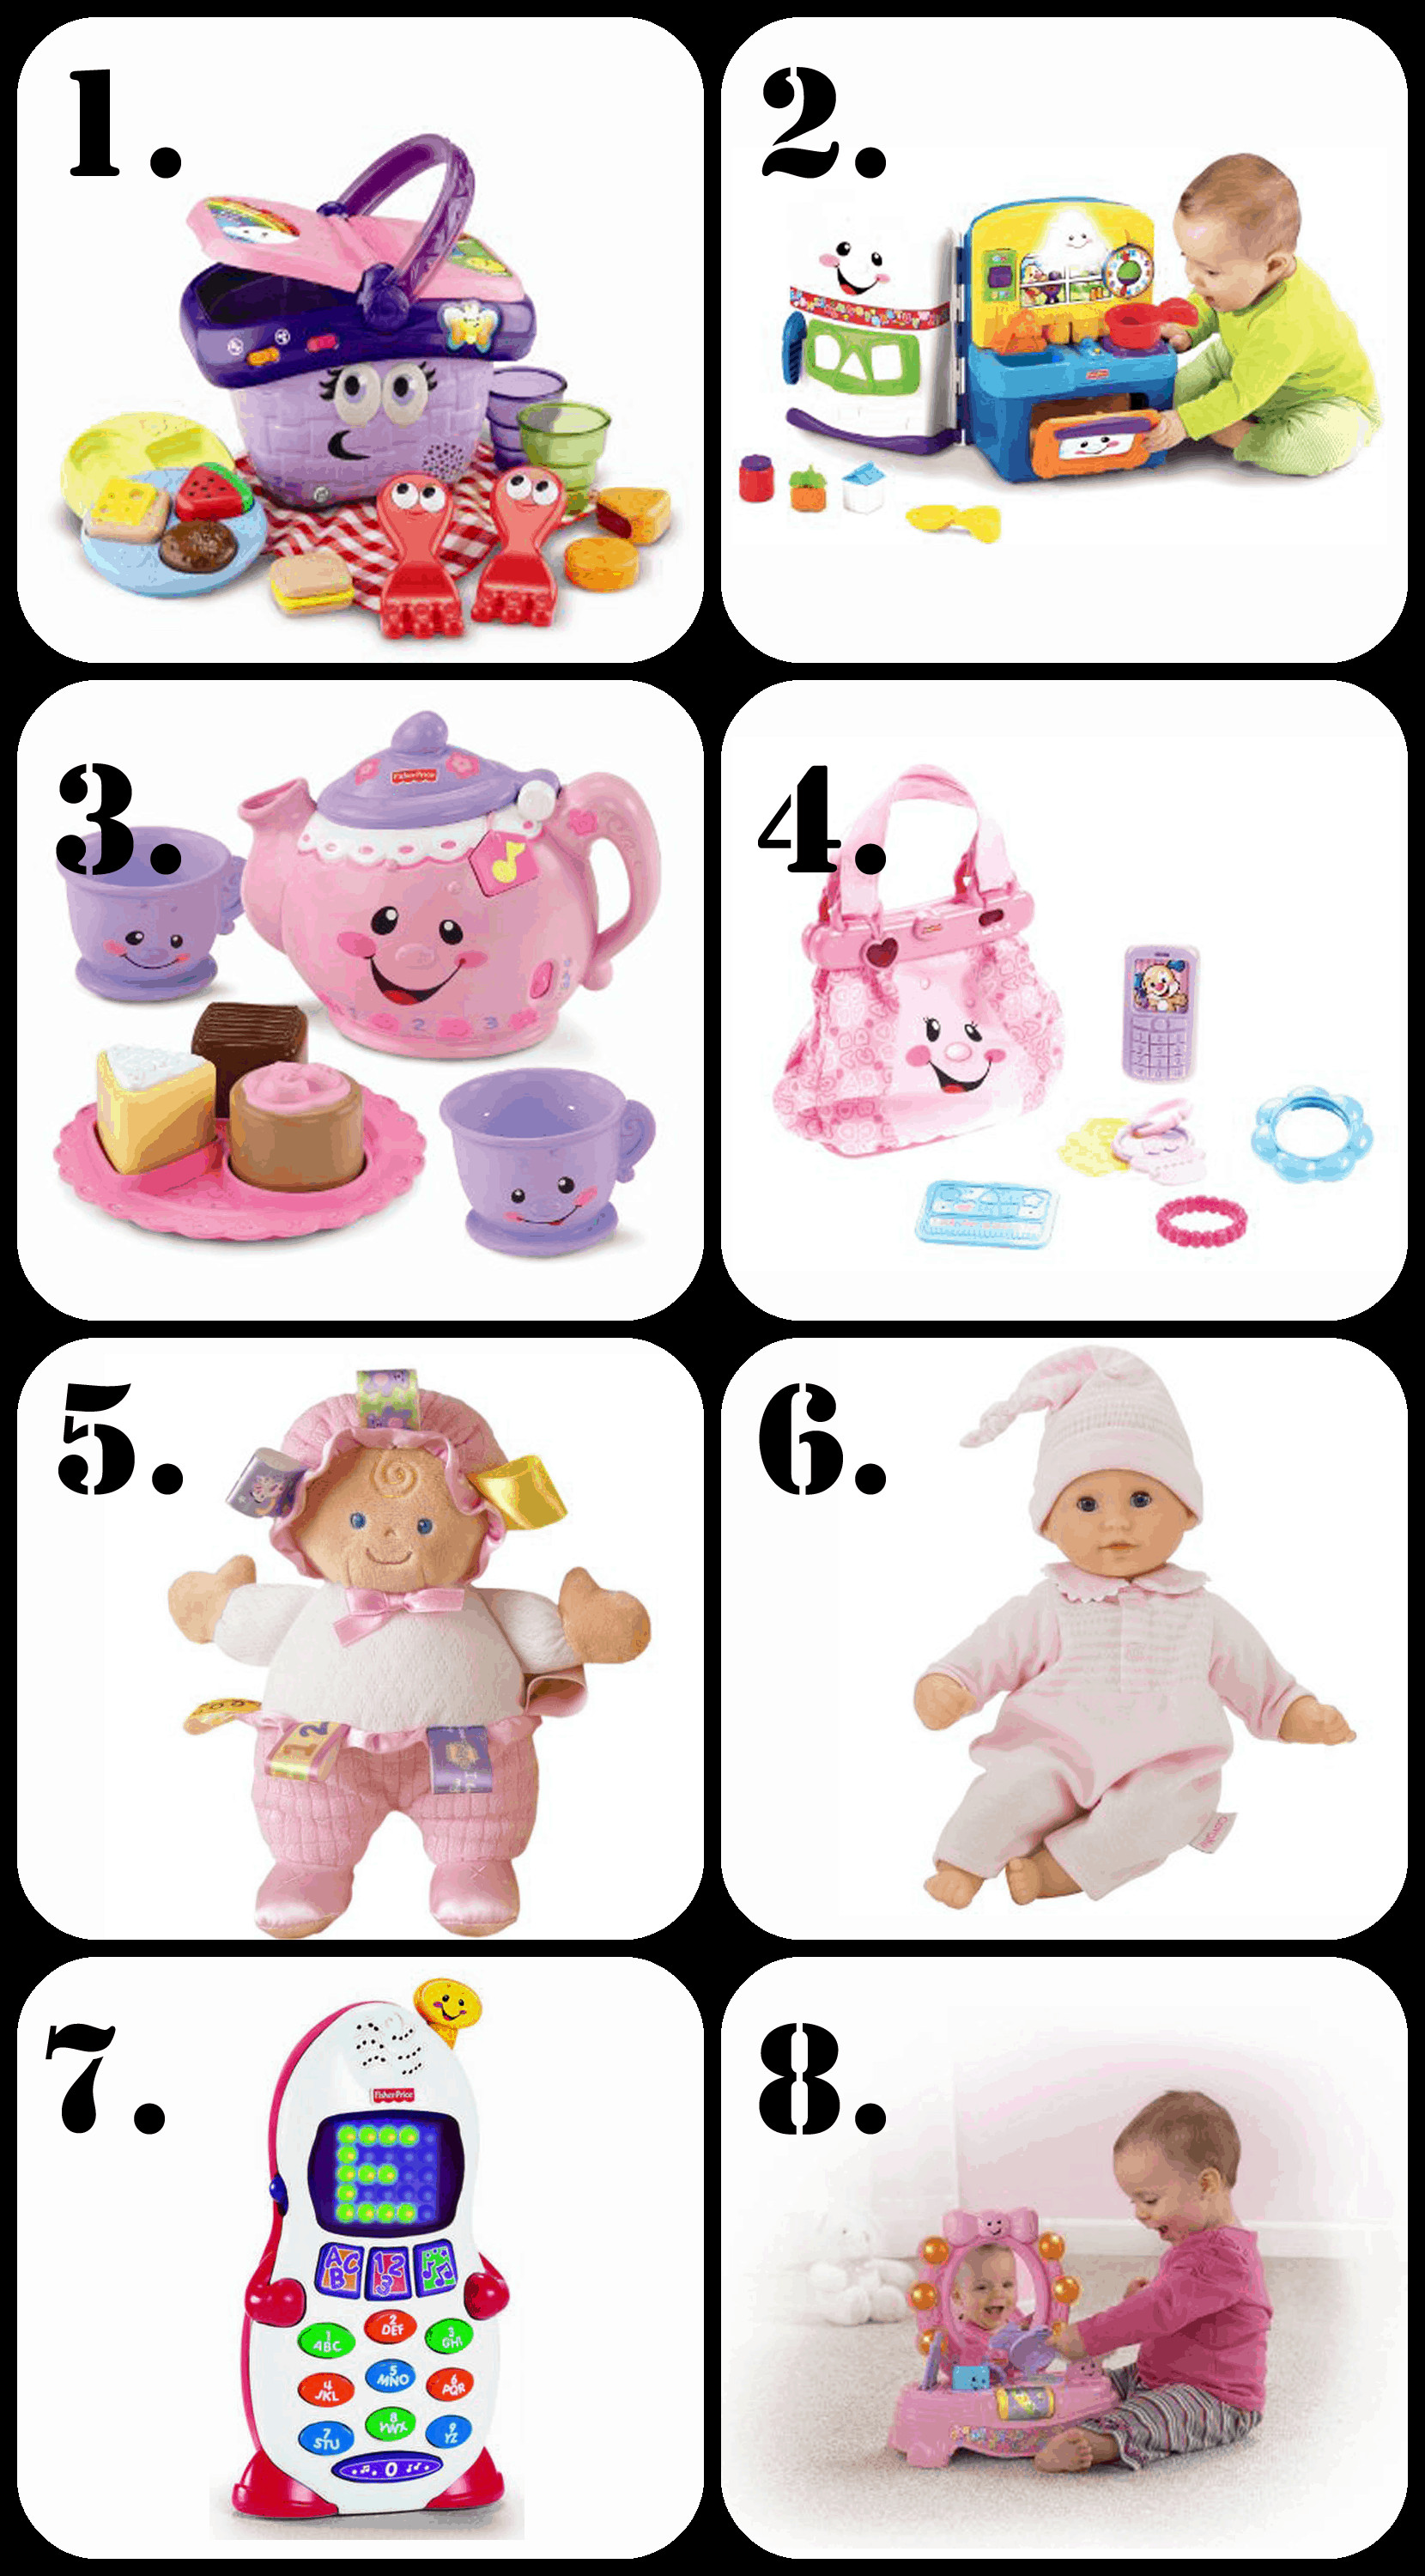 Birthday Gift Ideas For 2 Year Old Baby Girl  BEST Gifts for a 1 Year Old Girl • The Pinning Mama